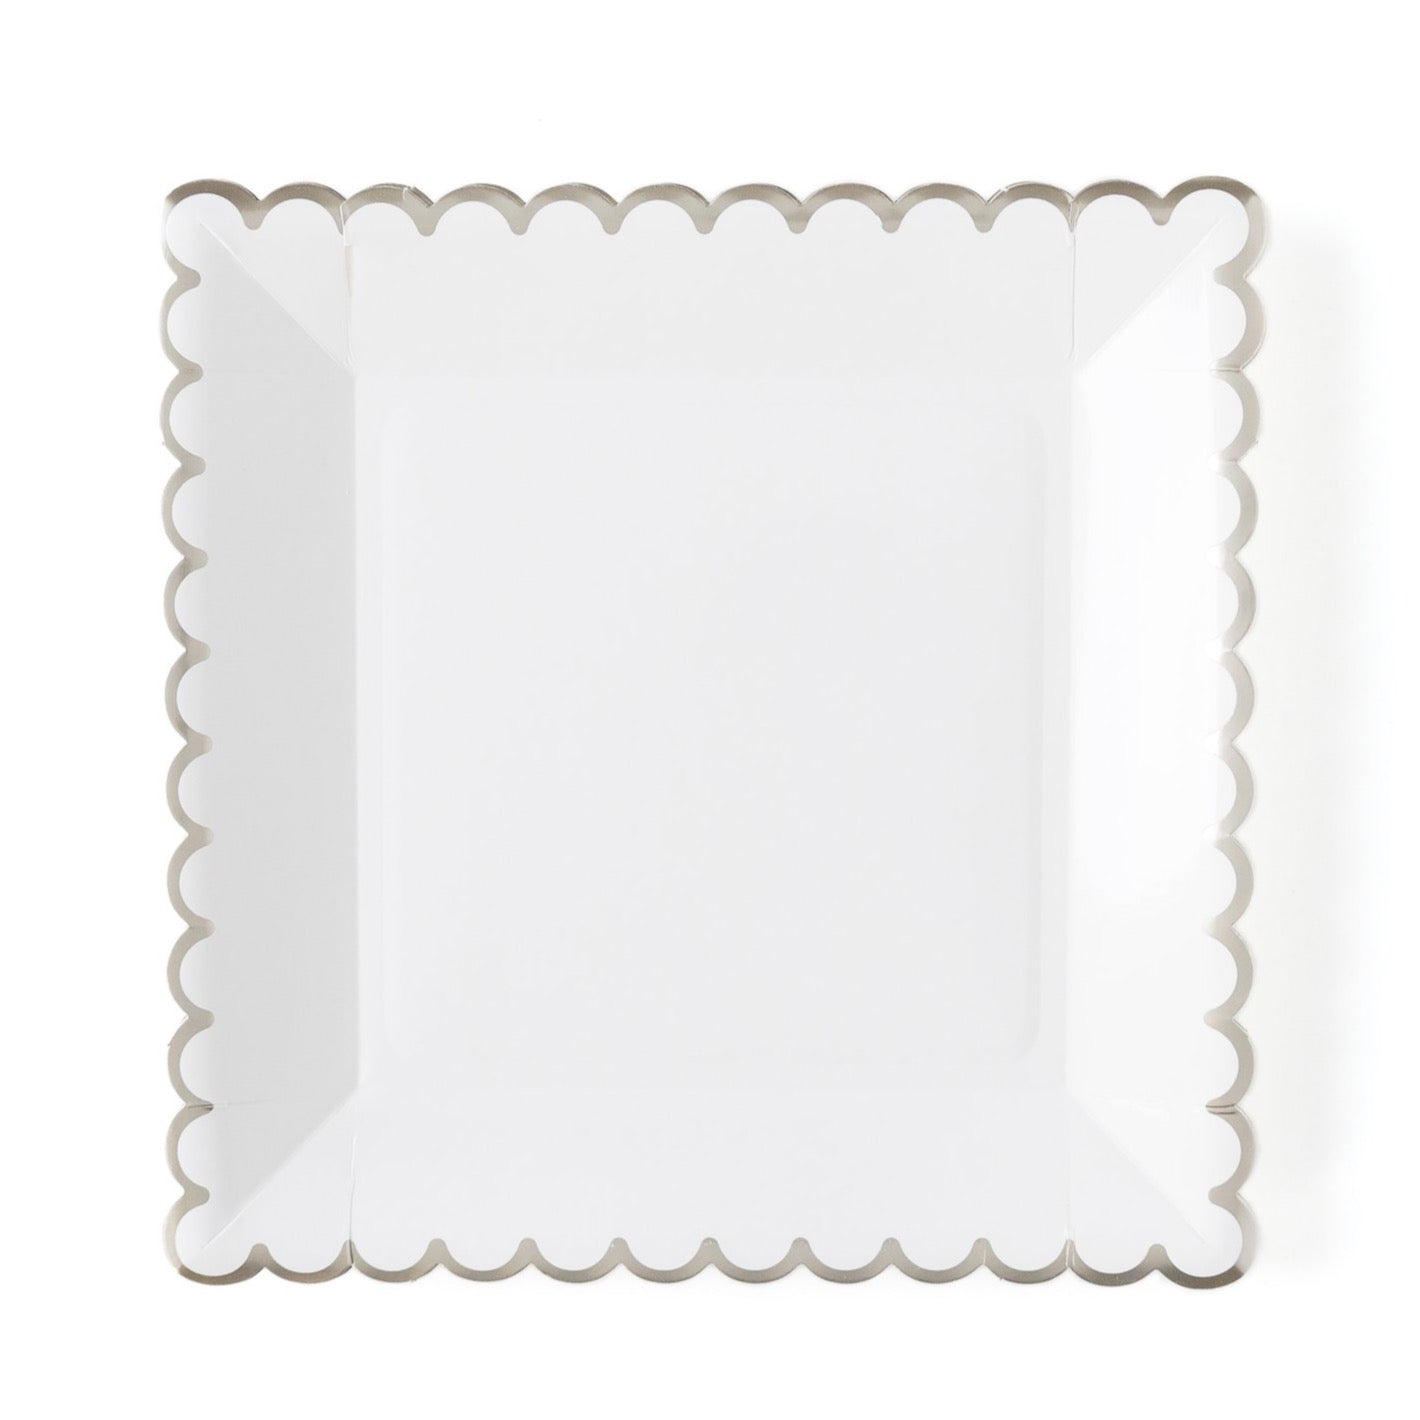 Winter White Scalloped Square Lunch Plates | The Party Darling